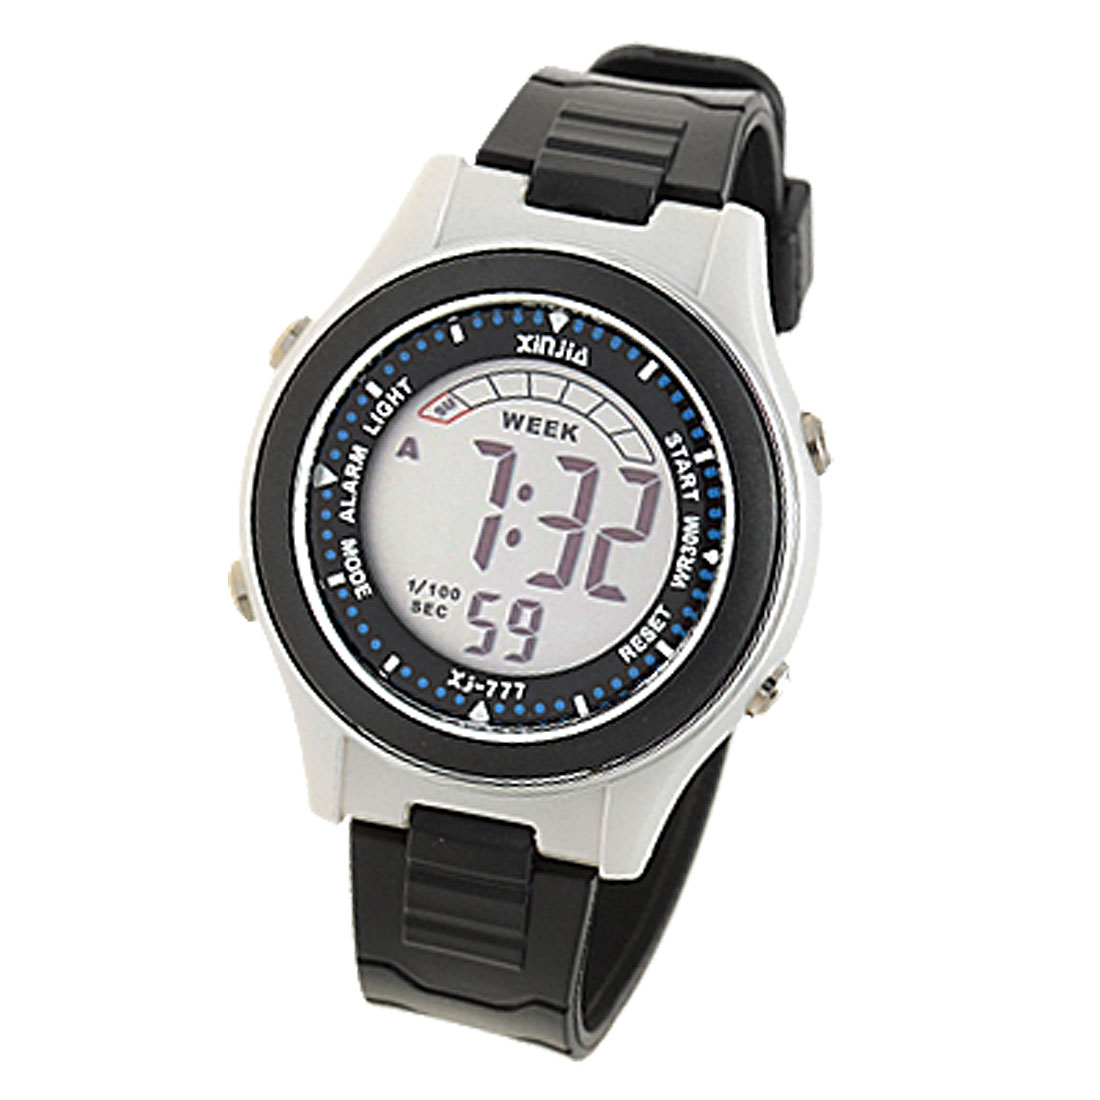 Kids Children's Digital LCD Sports Wrist Watch Stopwatch